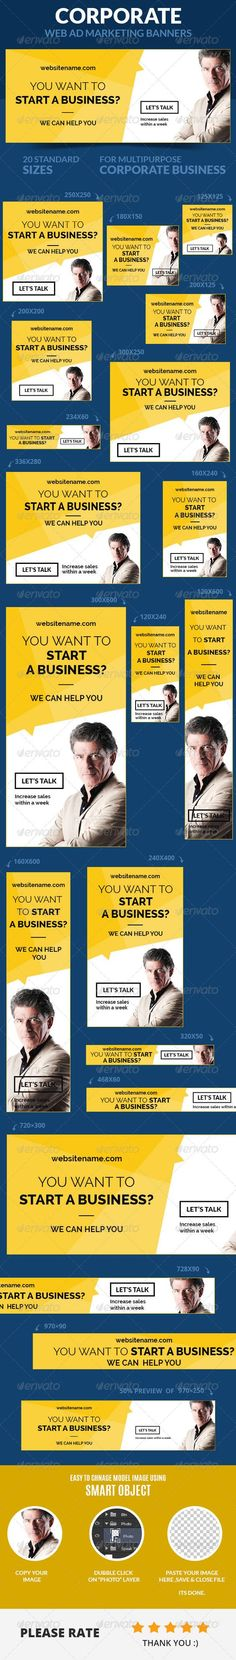 A set of Corporate Web Ad Marketing Banners is comes with 20 standard dimensions which also meet Google adwords banners sizes. It included all the layered psd file where you can easily change its text, color & shapes as per your requirements.: